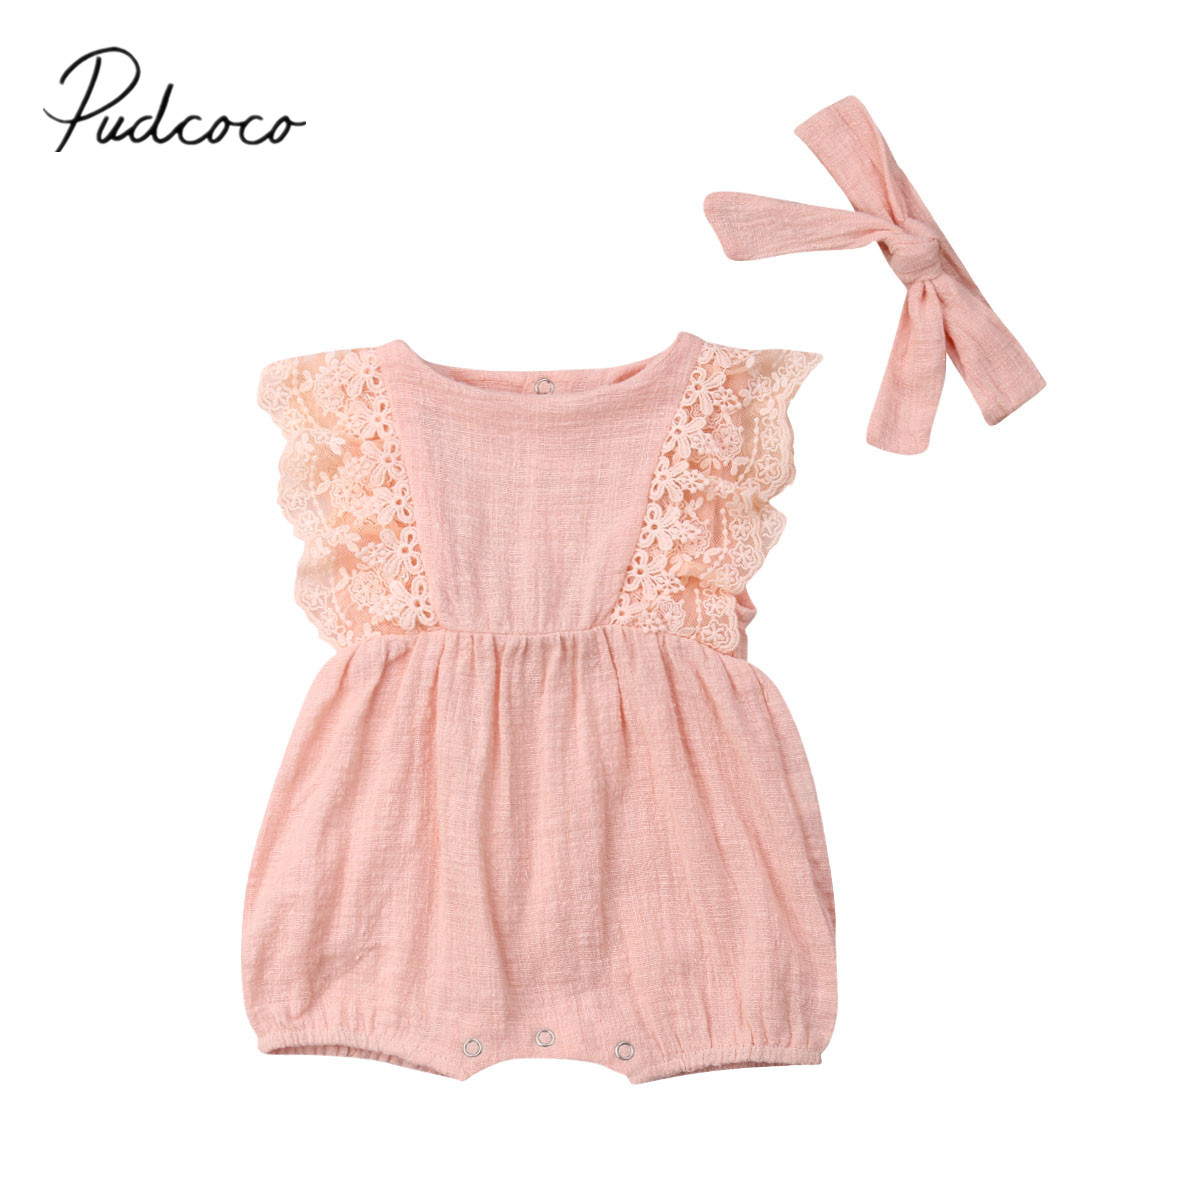 d9ec364c04c20 Summer Newborn Infant Baby Girls Clothing Lace Ruffles Baby Girl ...